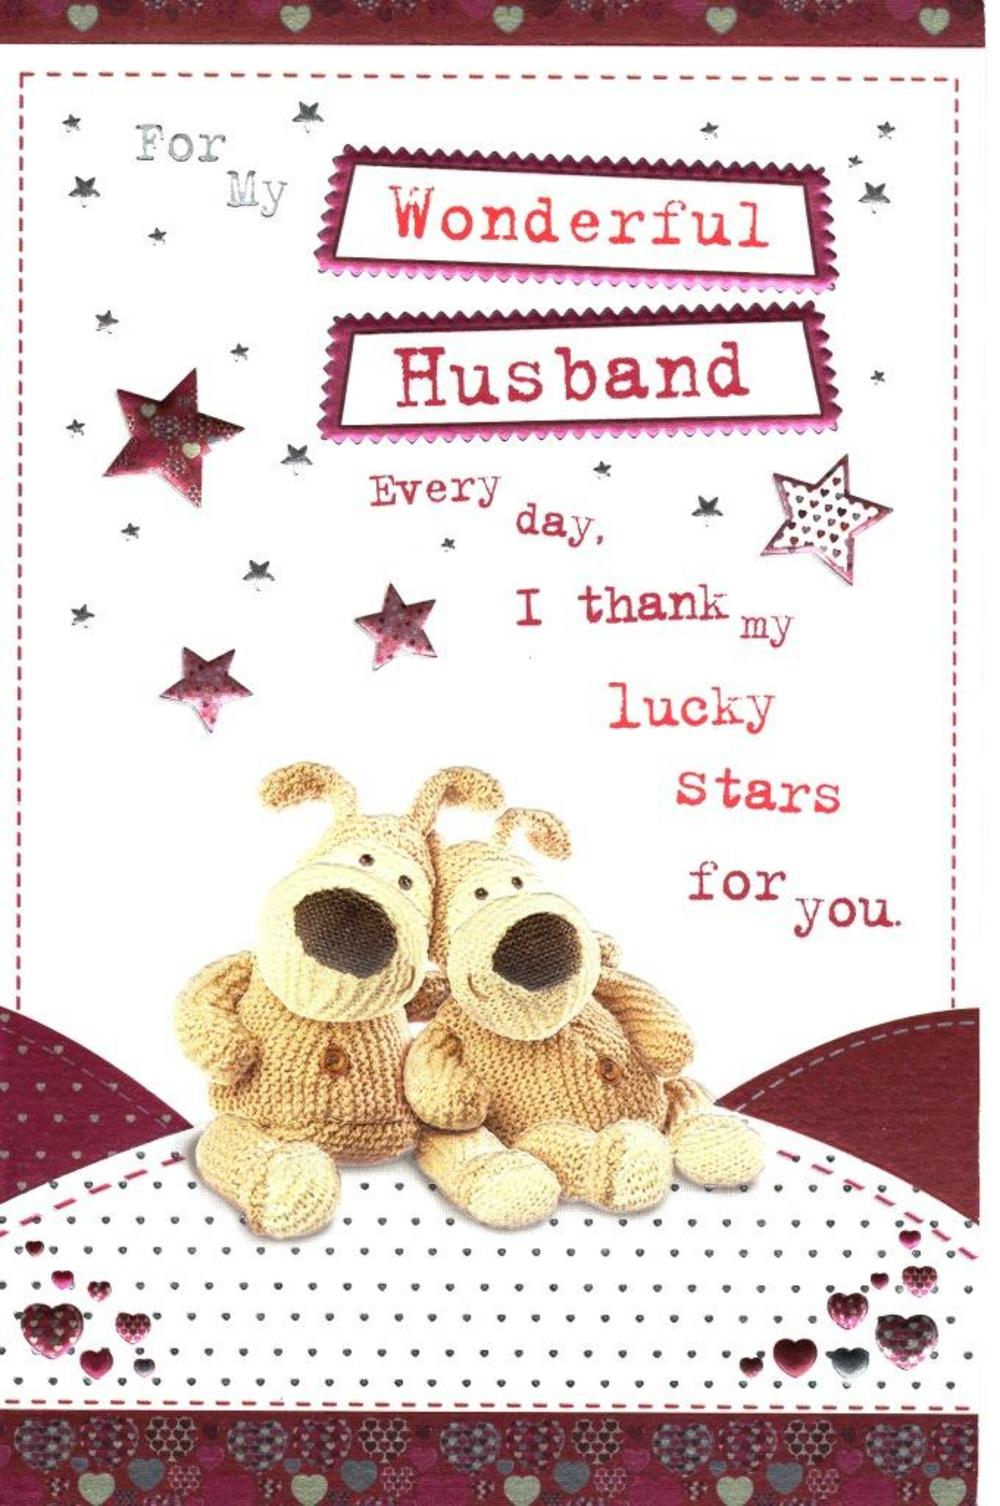 Boofle Wonderful Husband Valentine's Day Card